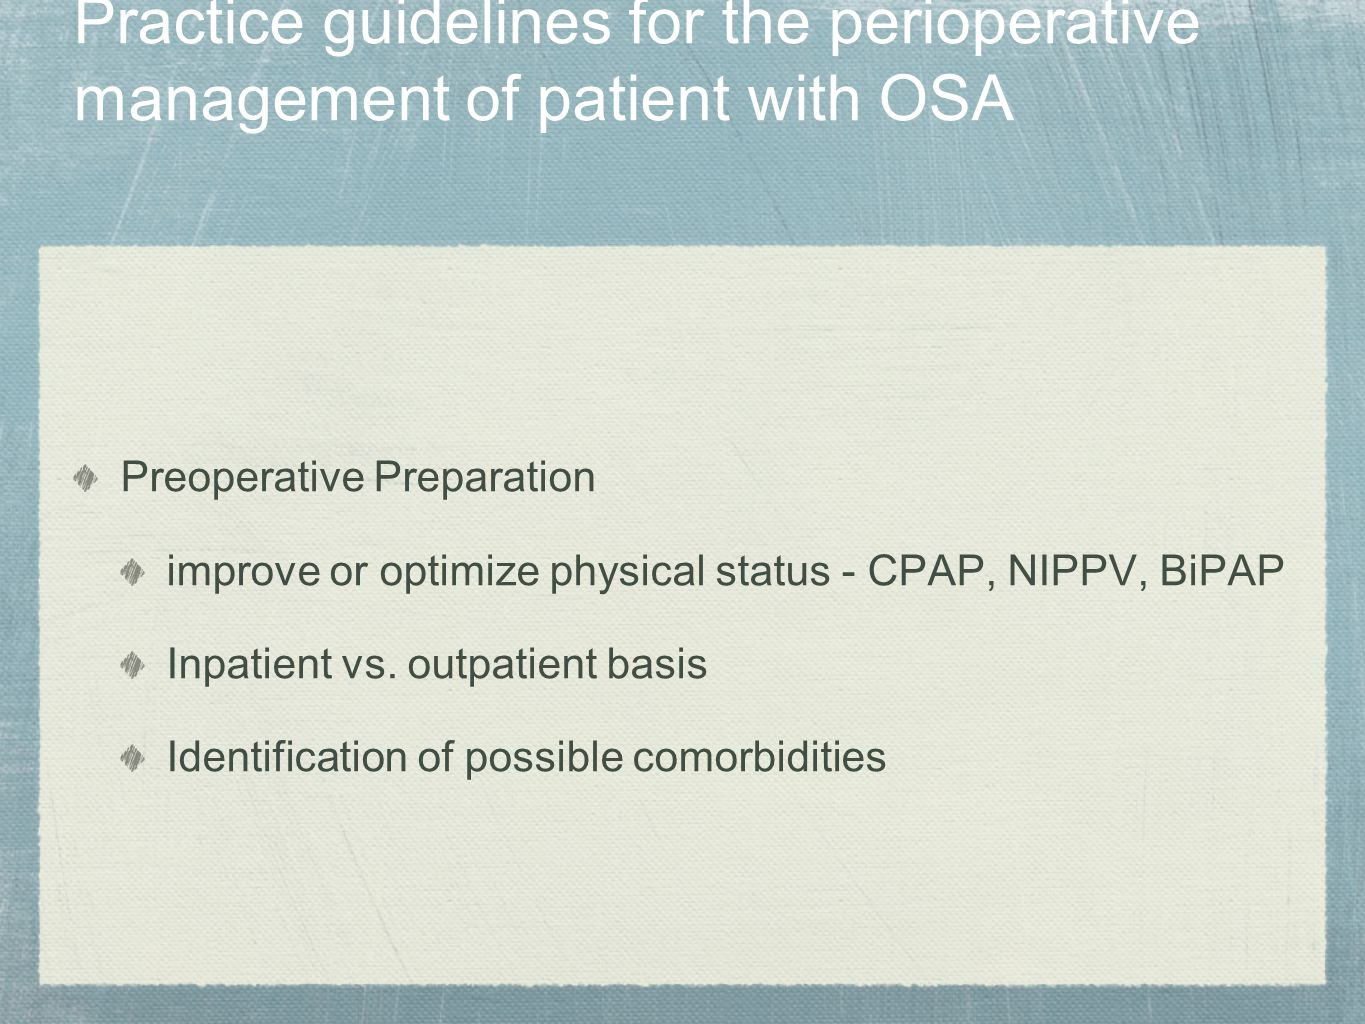 Practice guidelines for the perioperative management of patient with OSA Preoperative Preparation improve or optimize physical status - CPAP, NIPPV, B